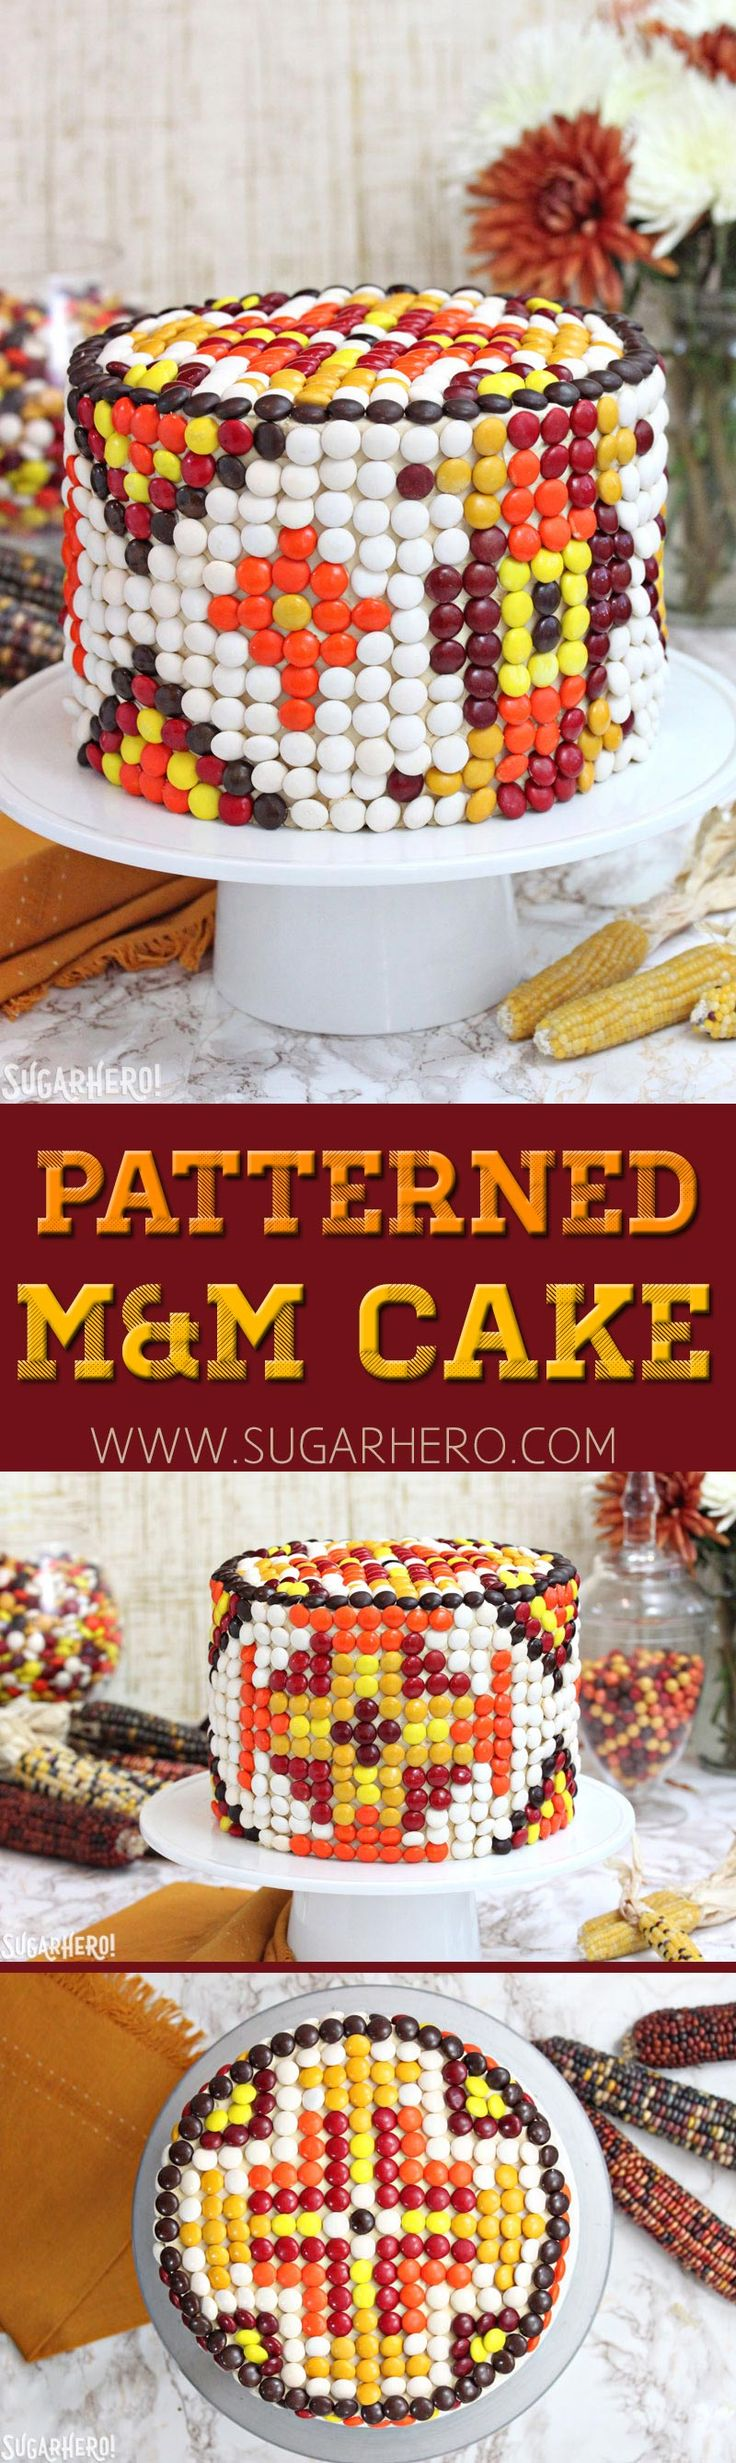 Patterned M M Cake -this gorgeous cake is decorated just with M M candies!    From 791c1d00b432